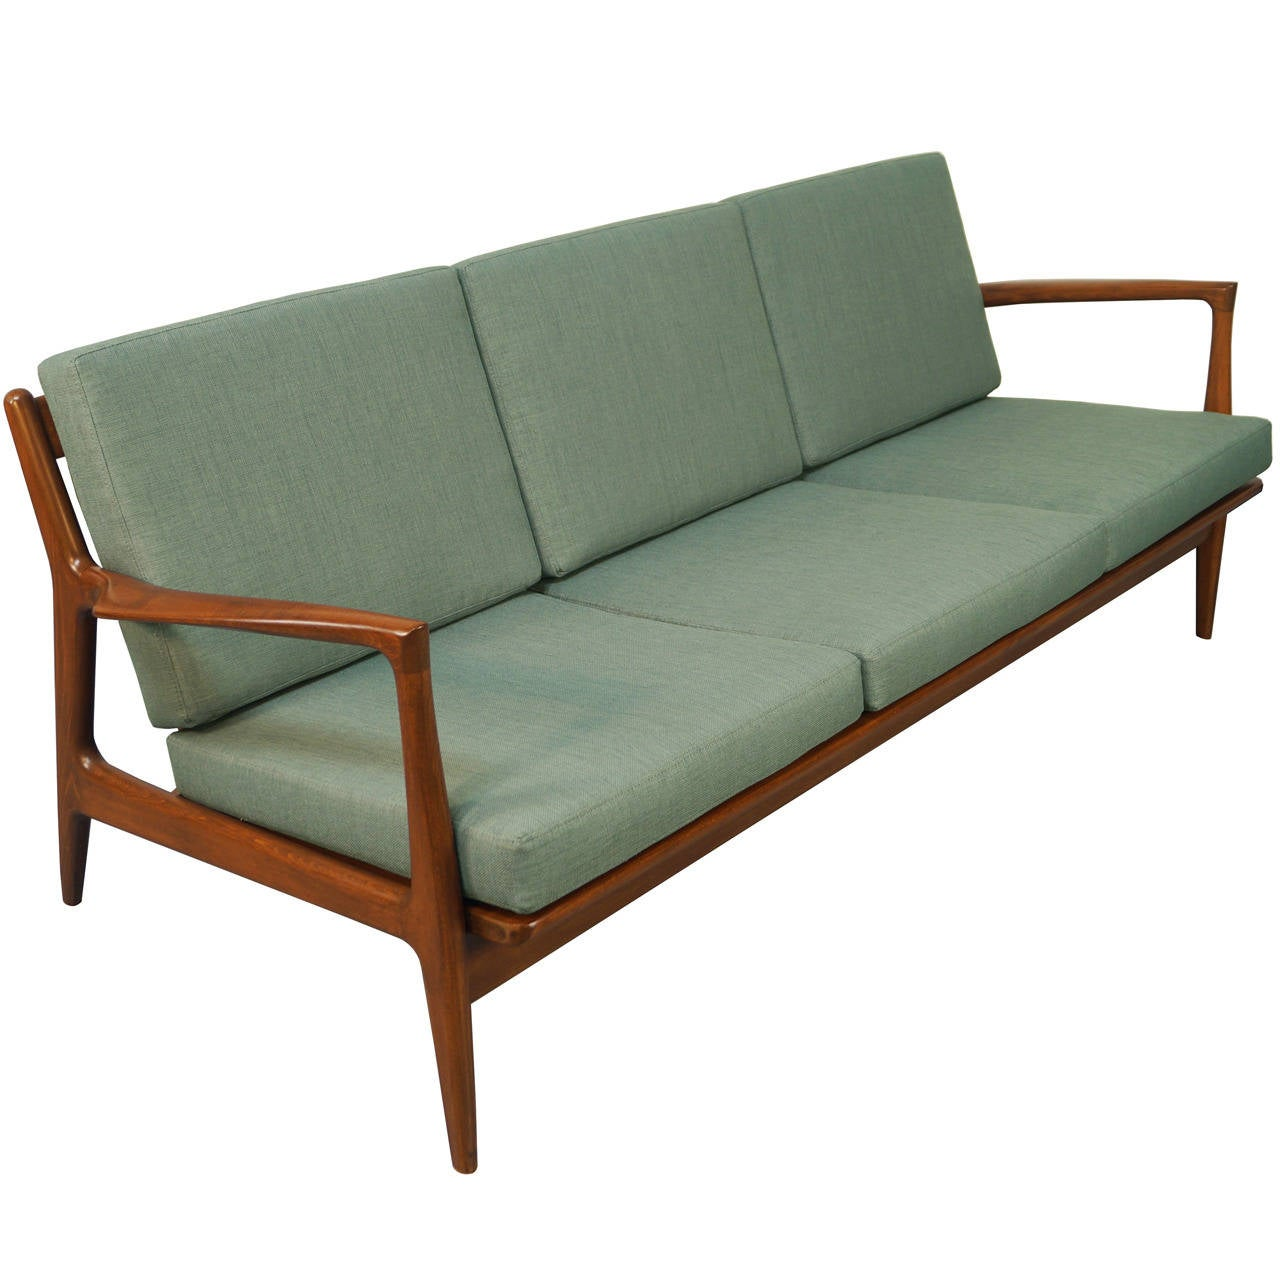 Danish Modern Sofas Catchy Mid Century Modern Sleeper Sofa Amazing Vintage Danish Thesofa